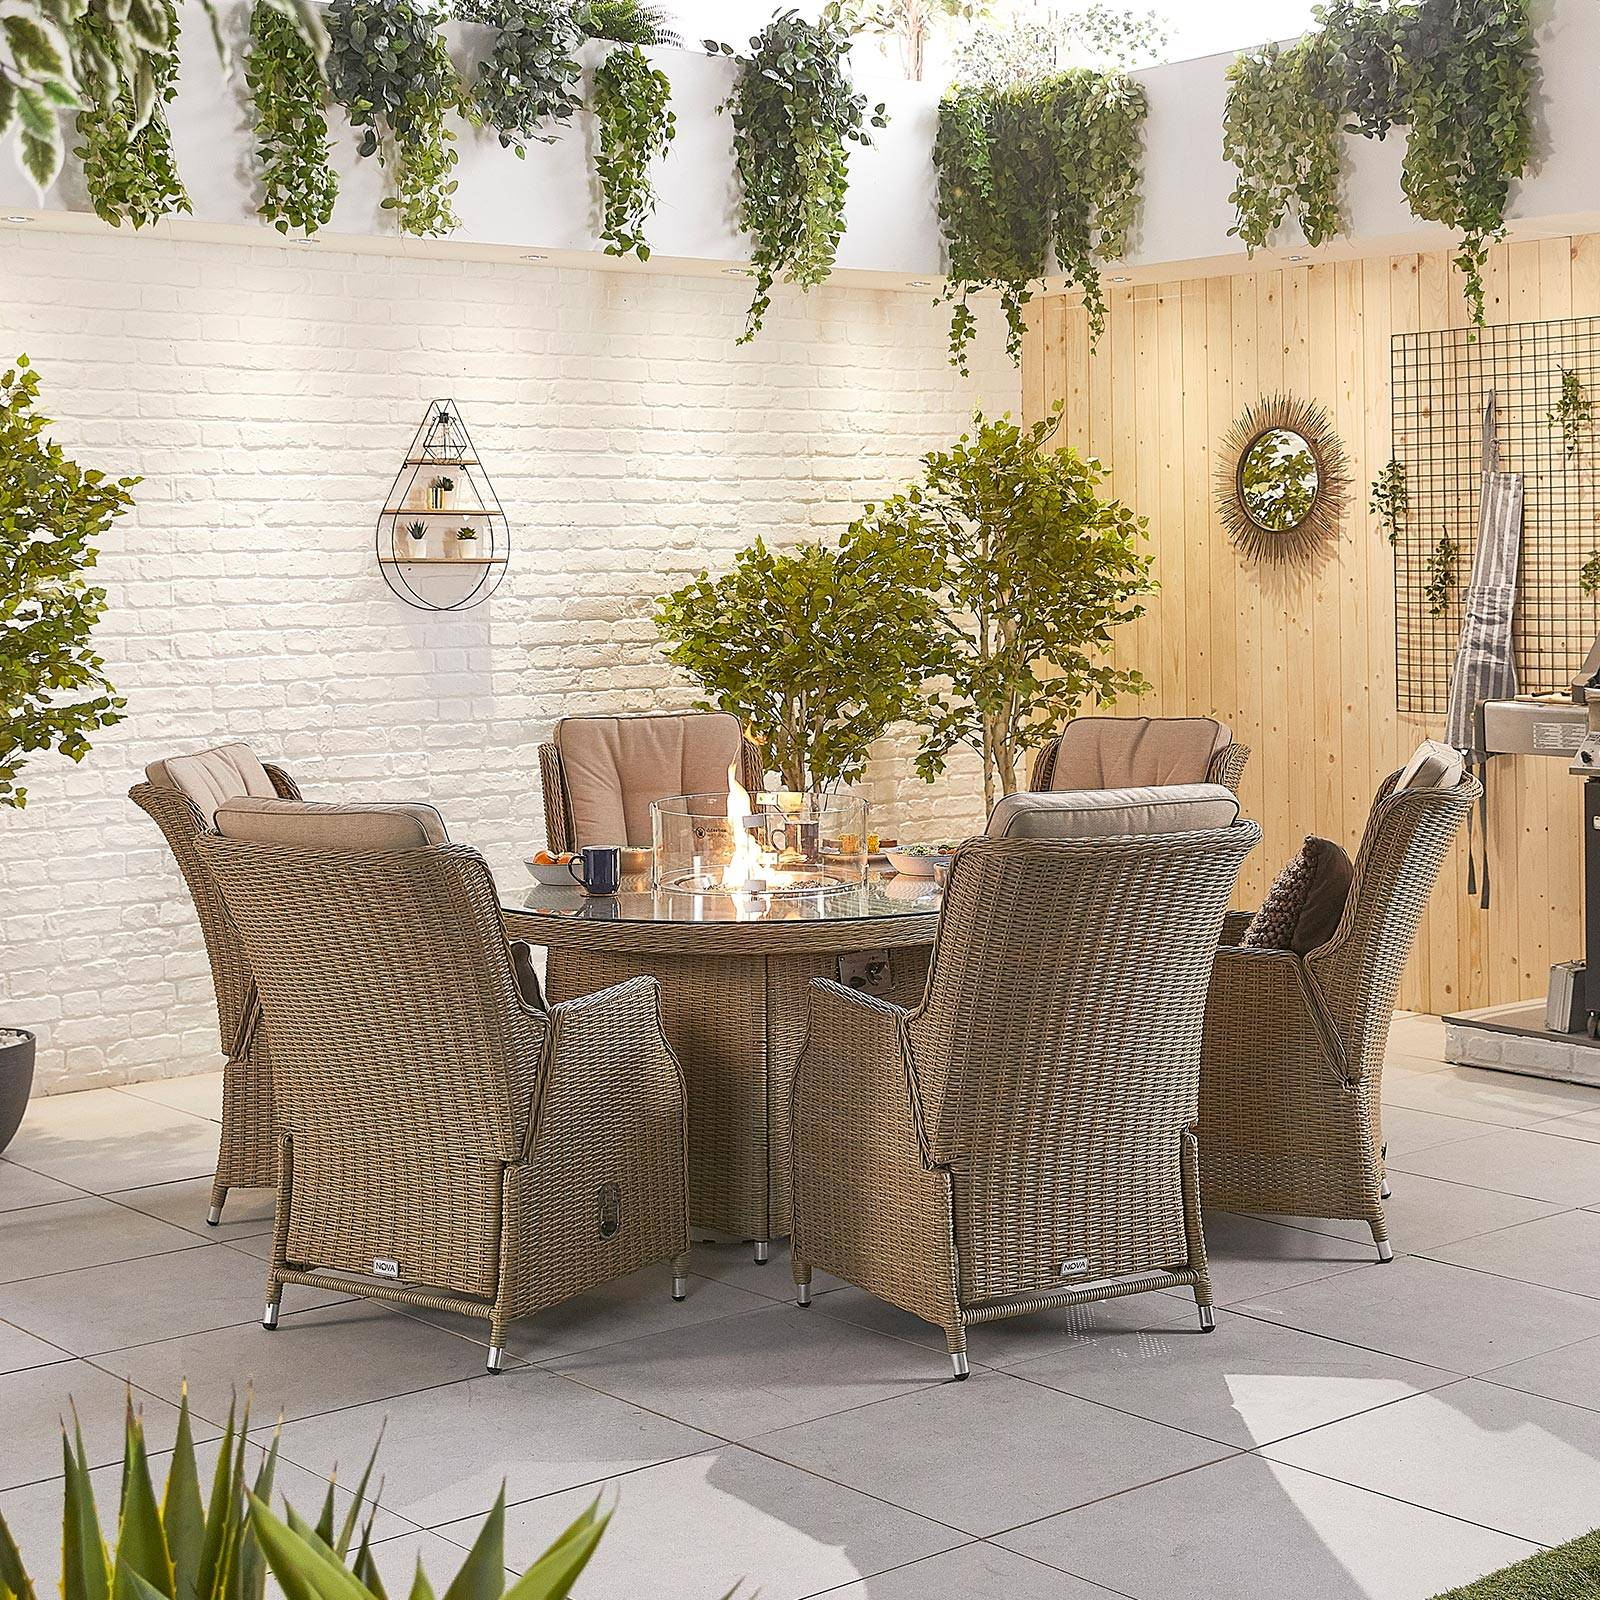 Oakworld Alfresco Heritage Carolina 6 Seat Dining Set with Fire Pit   1.5m Round Table   Willow